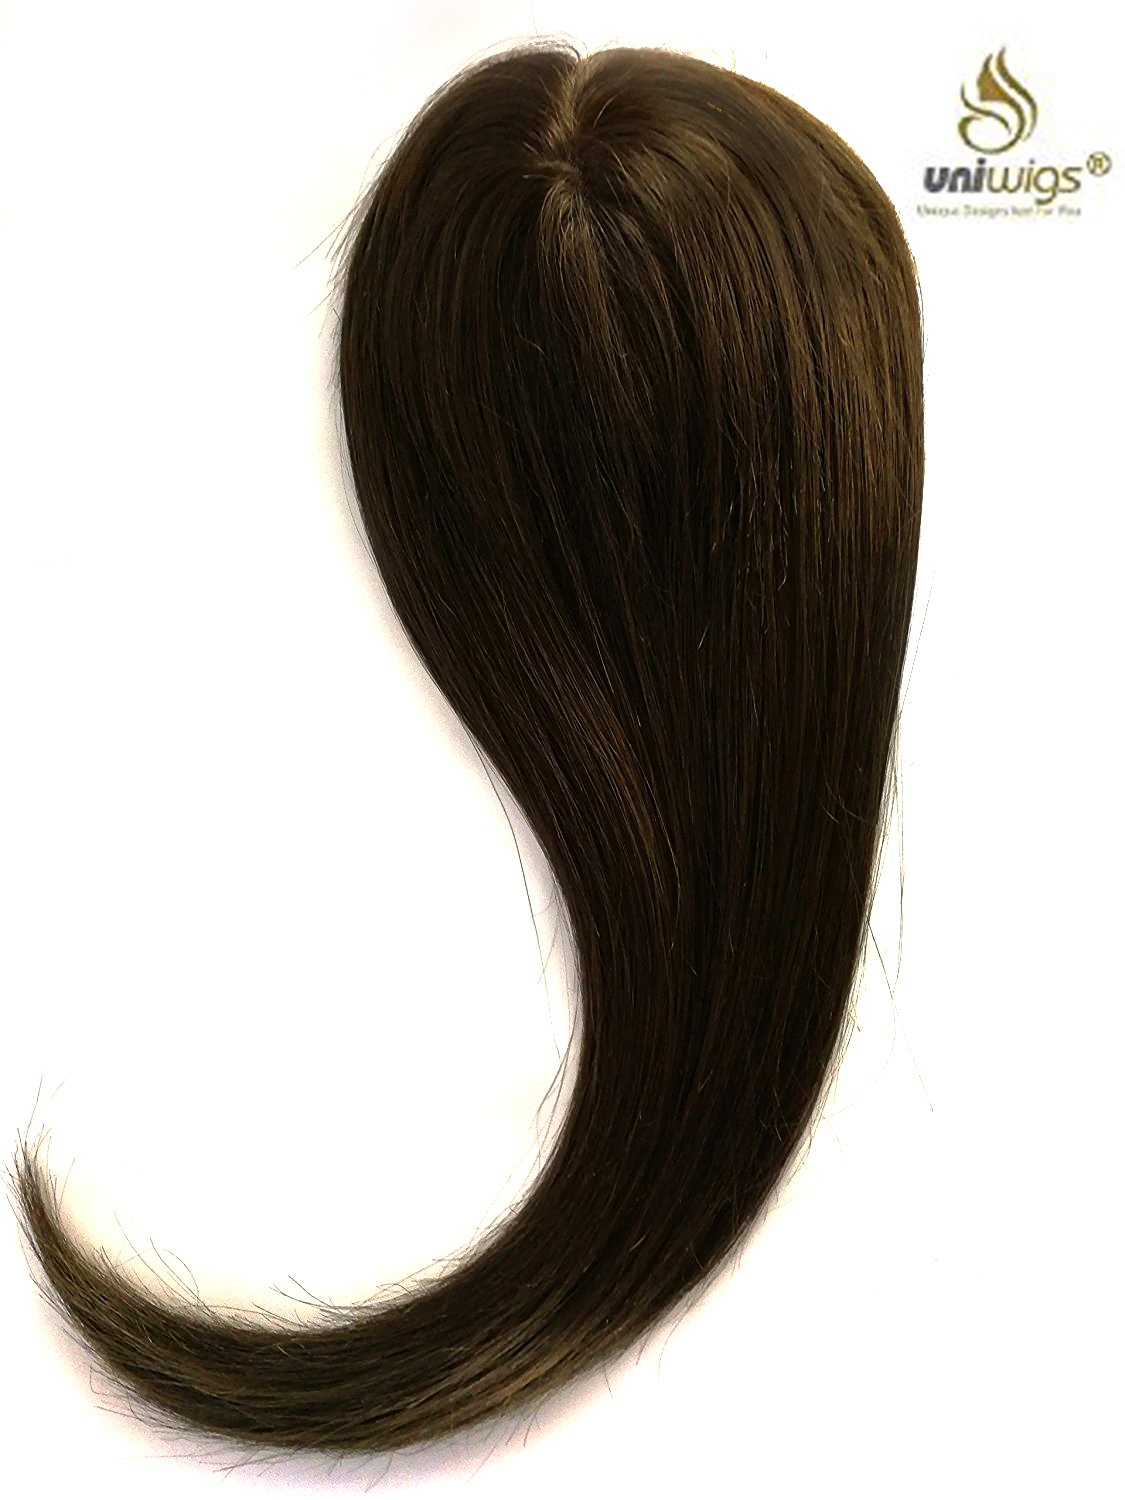 Uniwigs Remy Human Hair Mono Hairpiece, Closure, Hand Made Tied Hair Topper, Straight 16 Inches for Hair Loss (G-2) Dark Brown